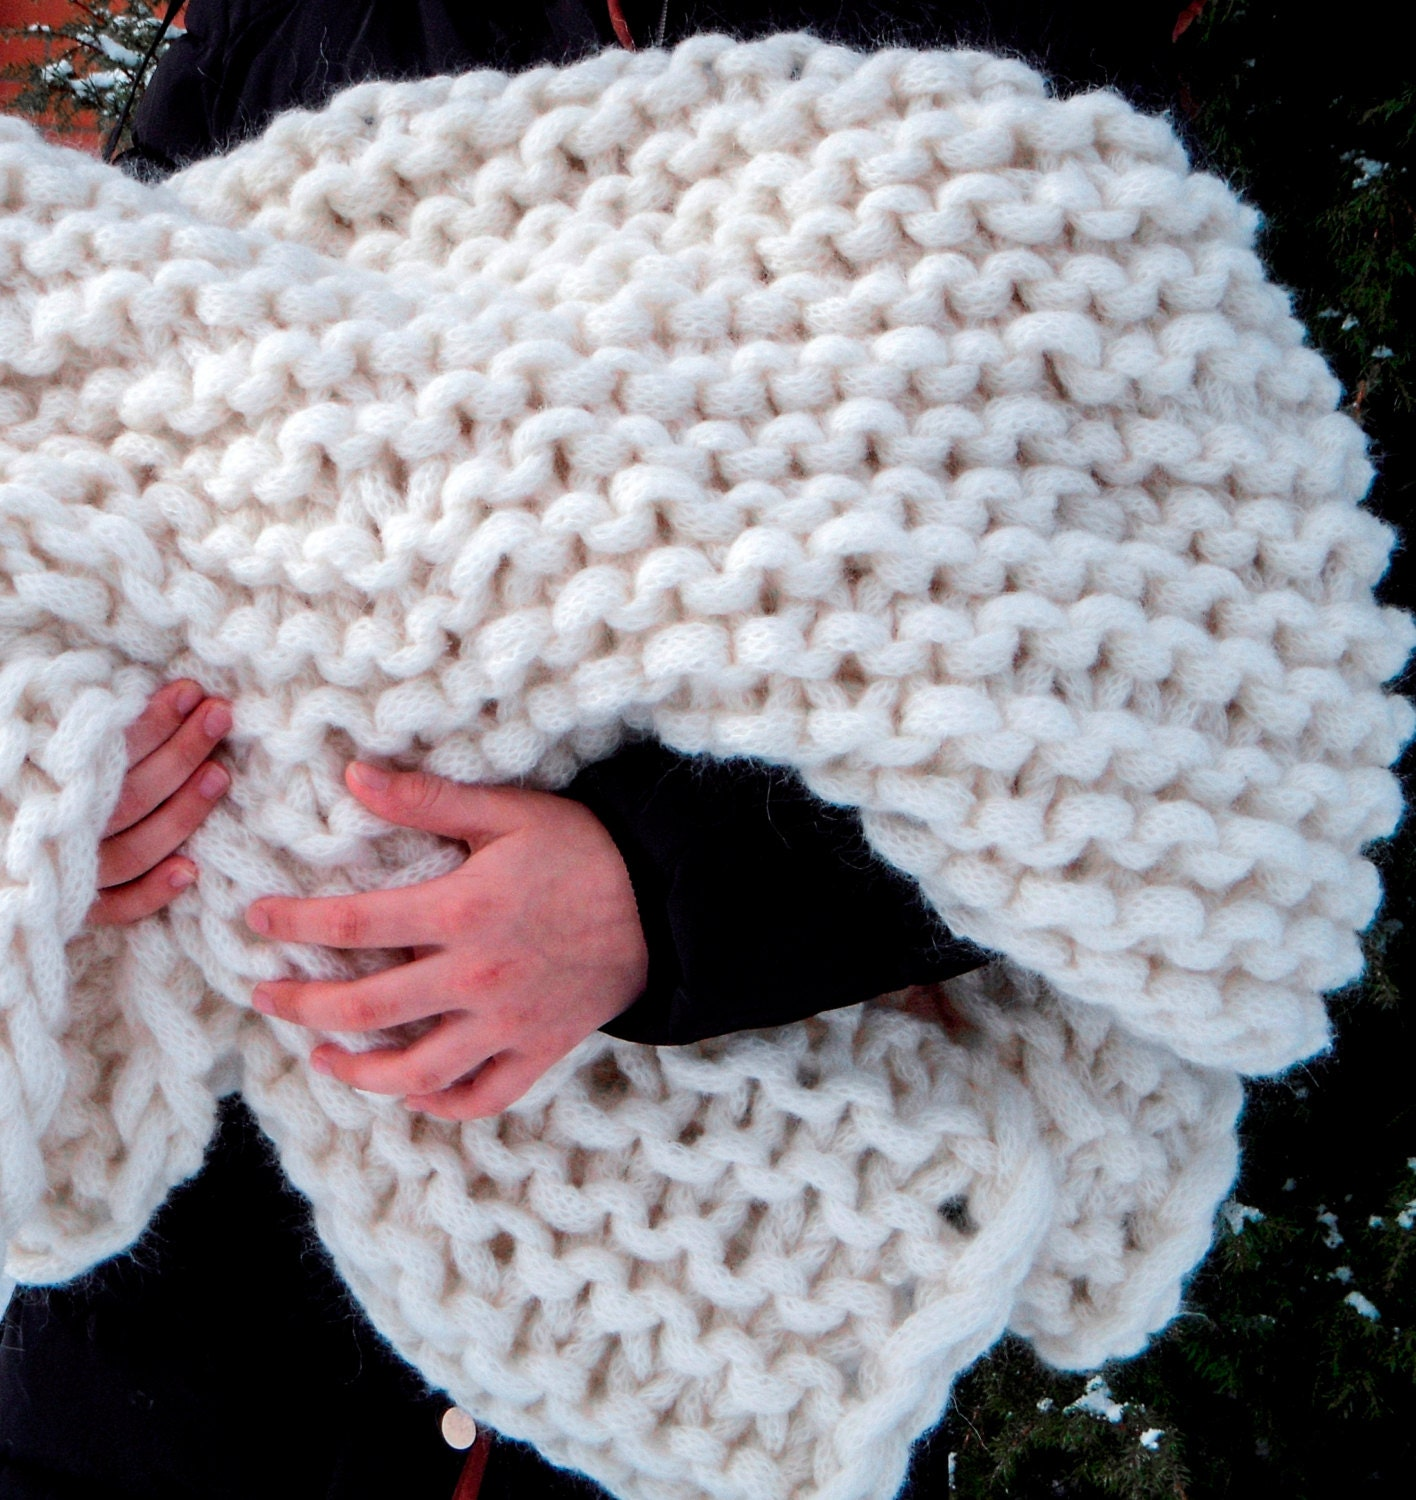 Giant Knitting Blankets : Chunky knit blanket giant super by amberzhanno